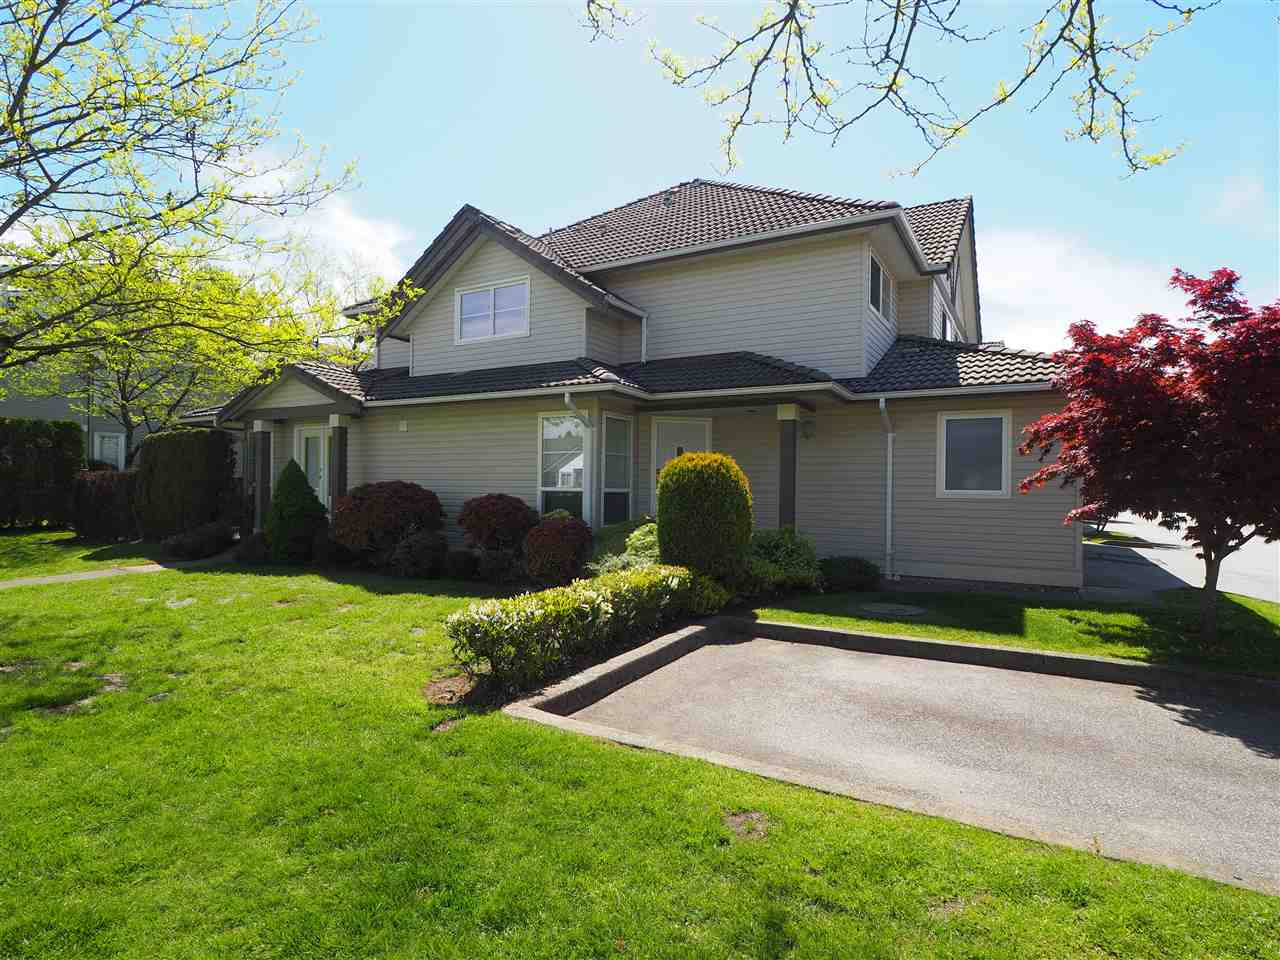 79 758 RIVERSIDE DRIVE, Port Coquitlam, BC, V3B 7V8 Primary Photo